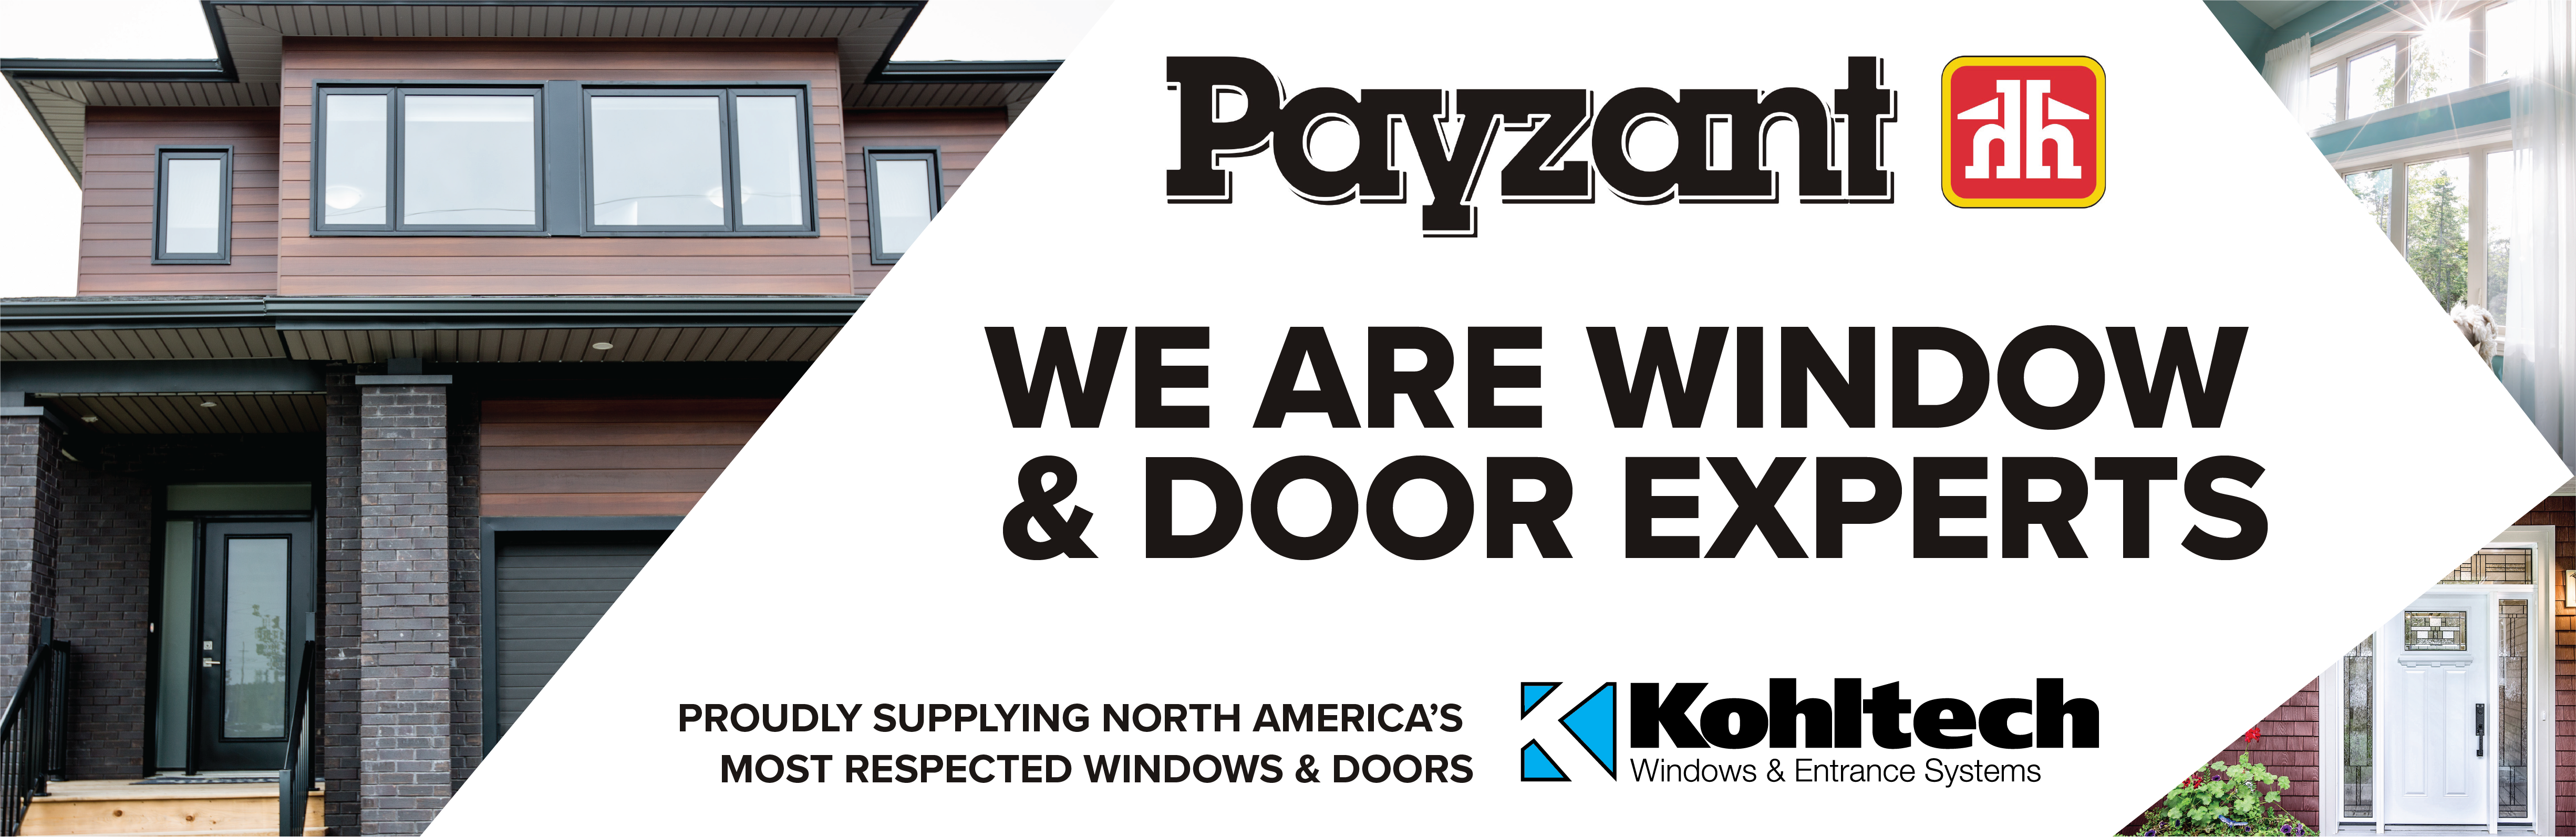 Payzant Trailer Decals